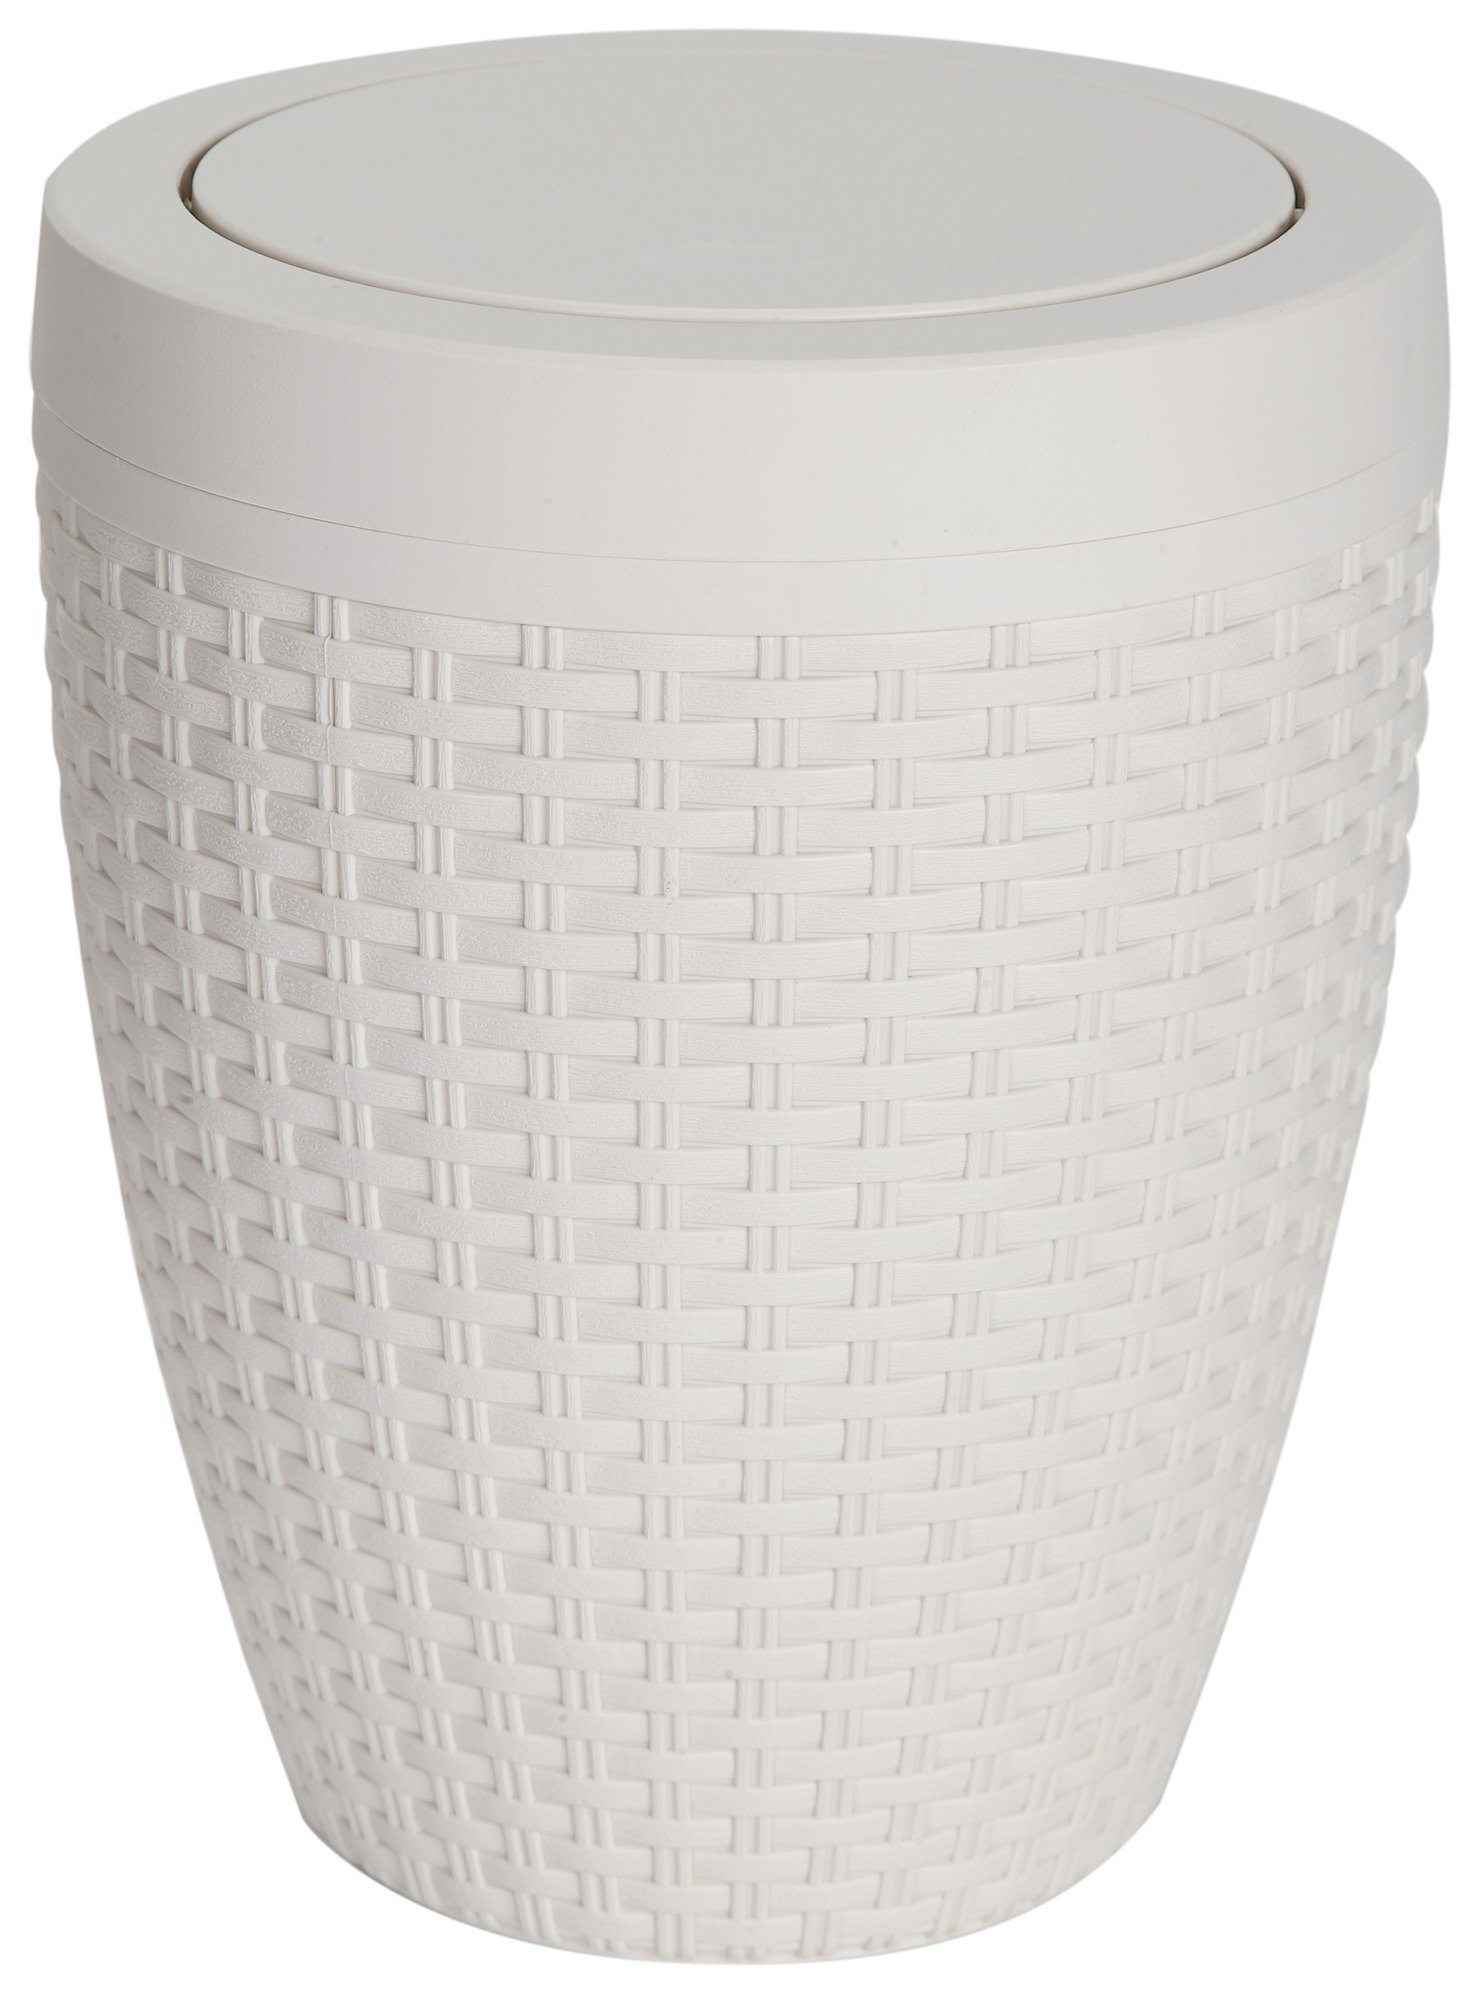 Addis - 5 Litre Faux Rattan Swing Bin - Cream